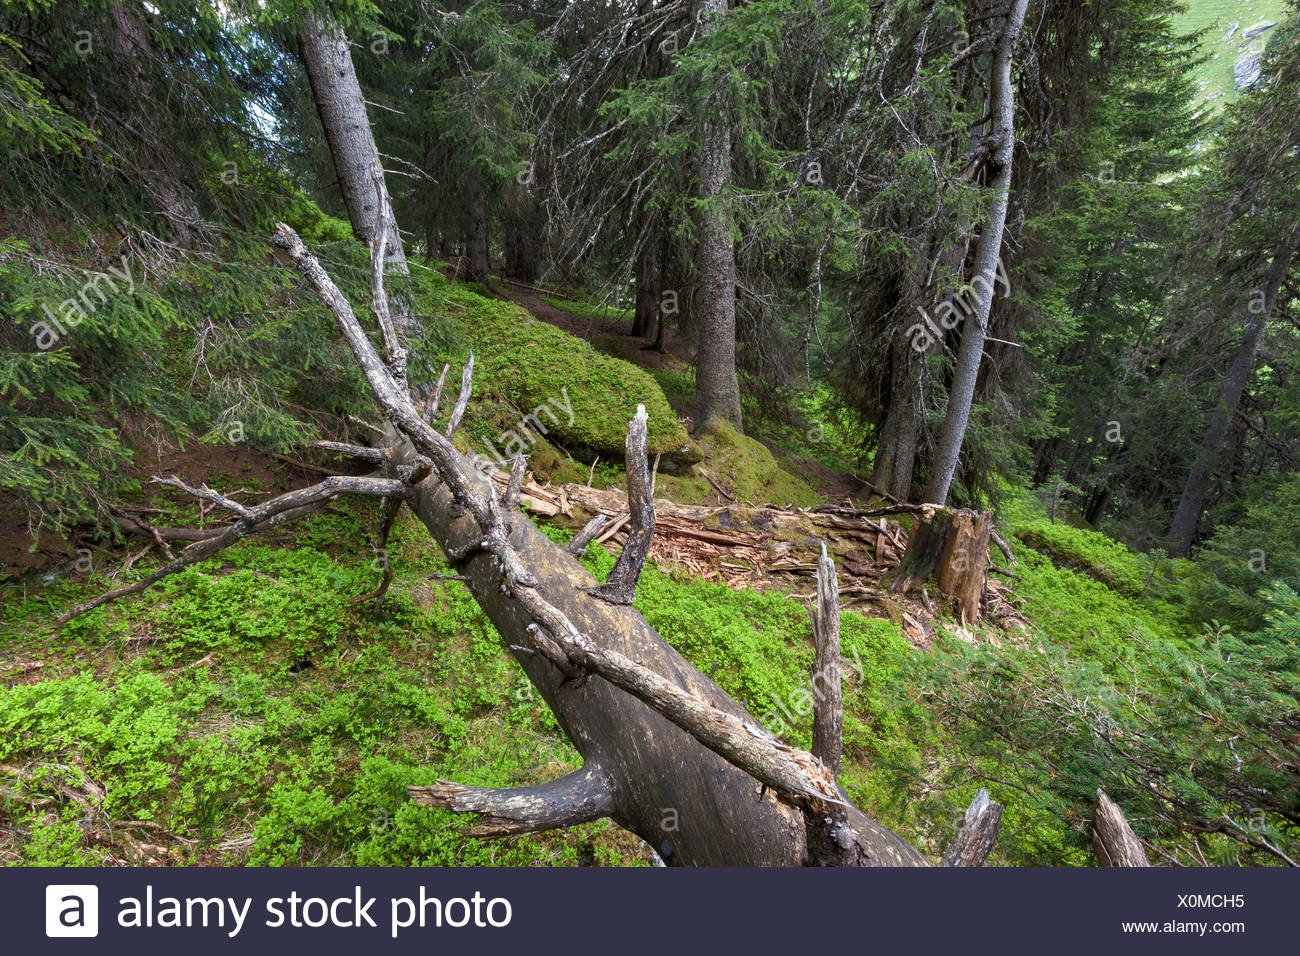 Primeval forest, forest, Scatlé, Switzerland, Europe, canton, Graubünden, Grisons, Surselva, trees, spruces, dead wood - Stock Image